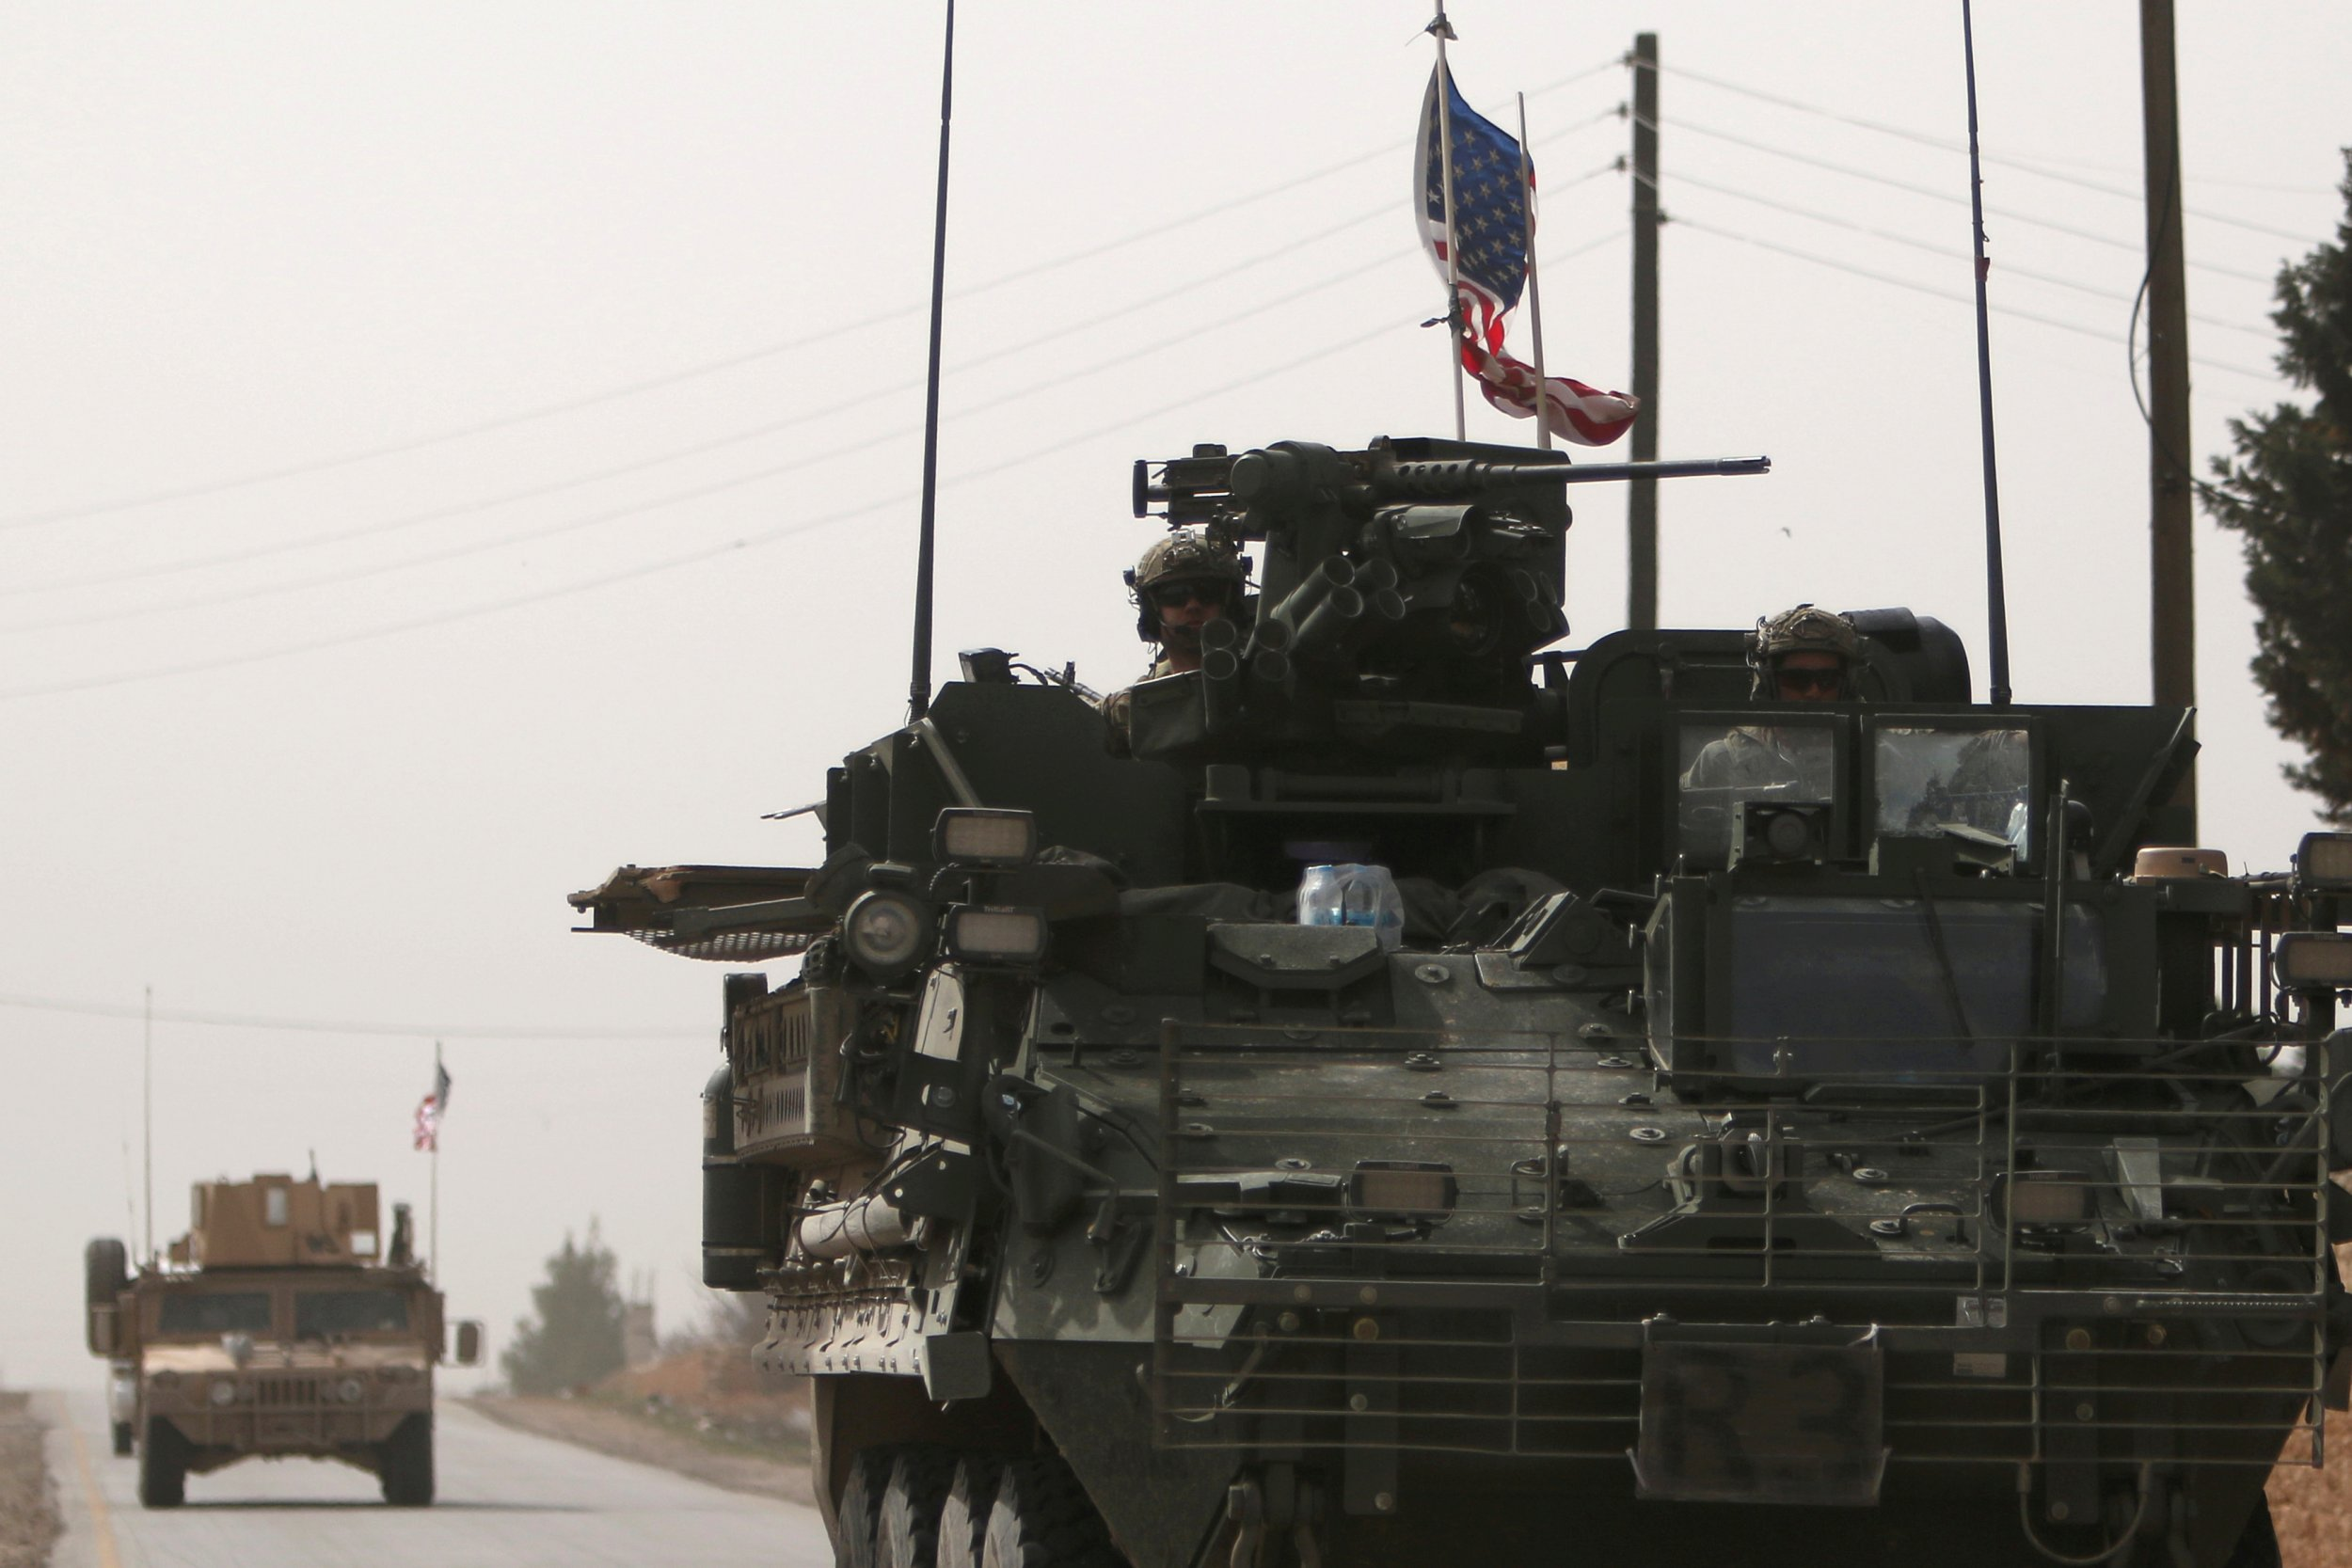 U.S. Military Considers New Super-Weapon to Counter Russia ...